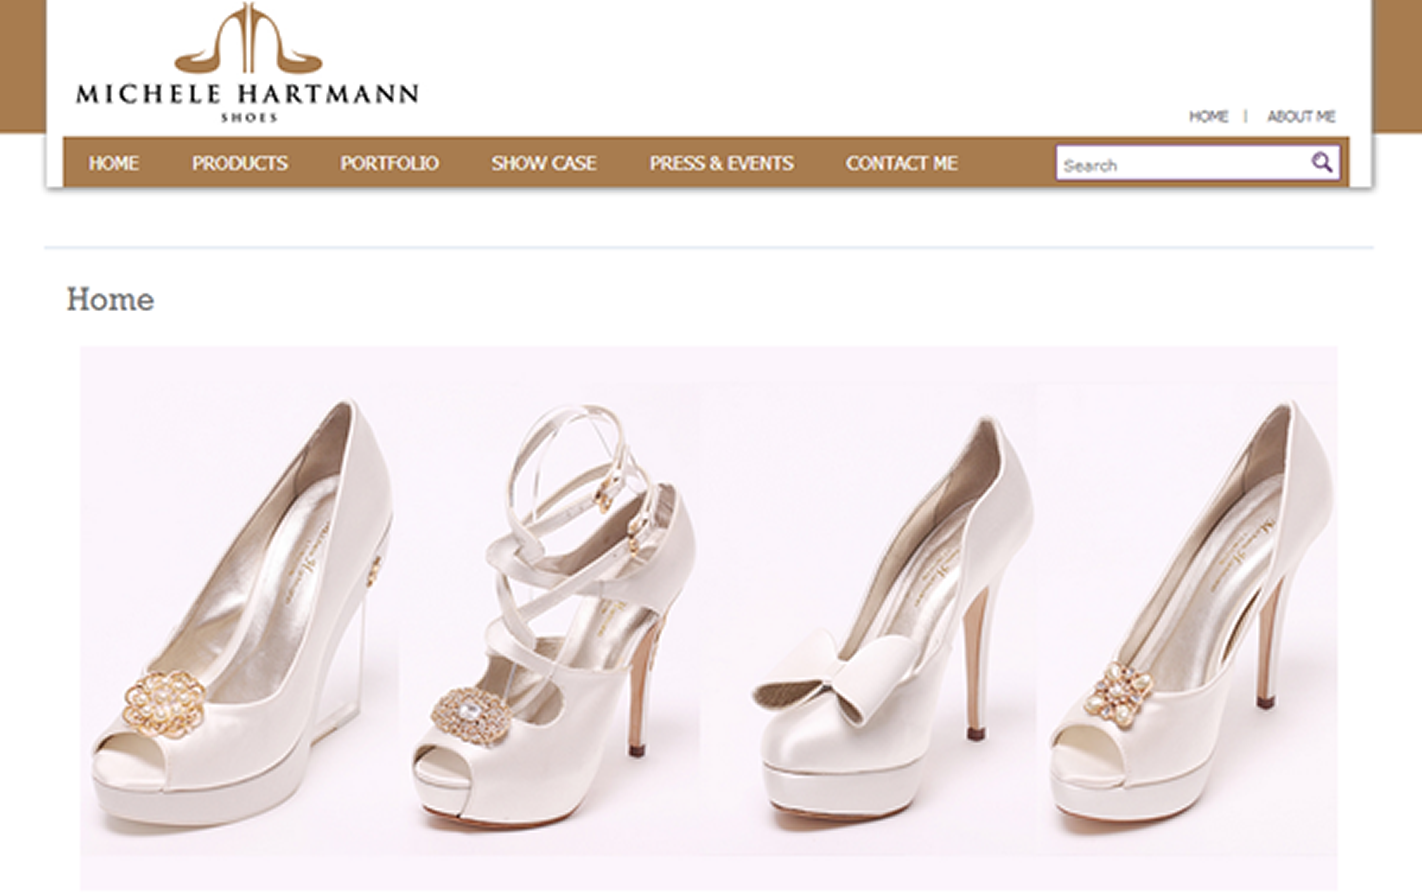 Michele Hartmann Shoes Design